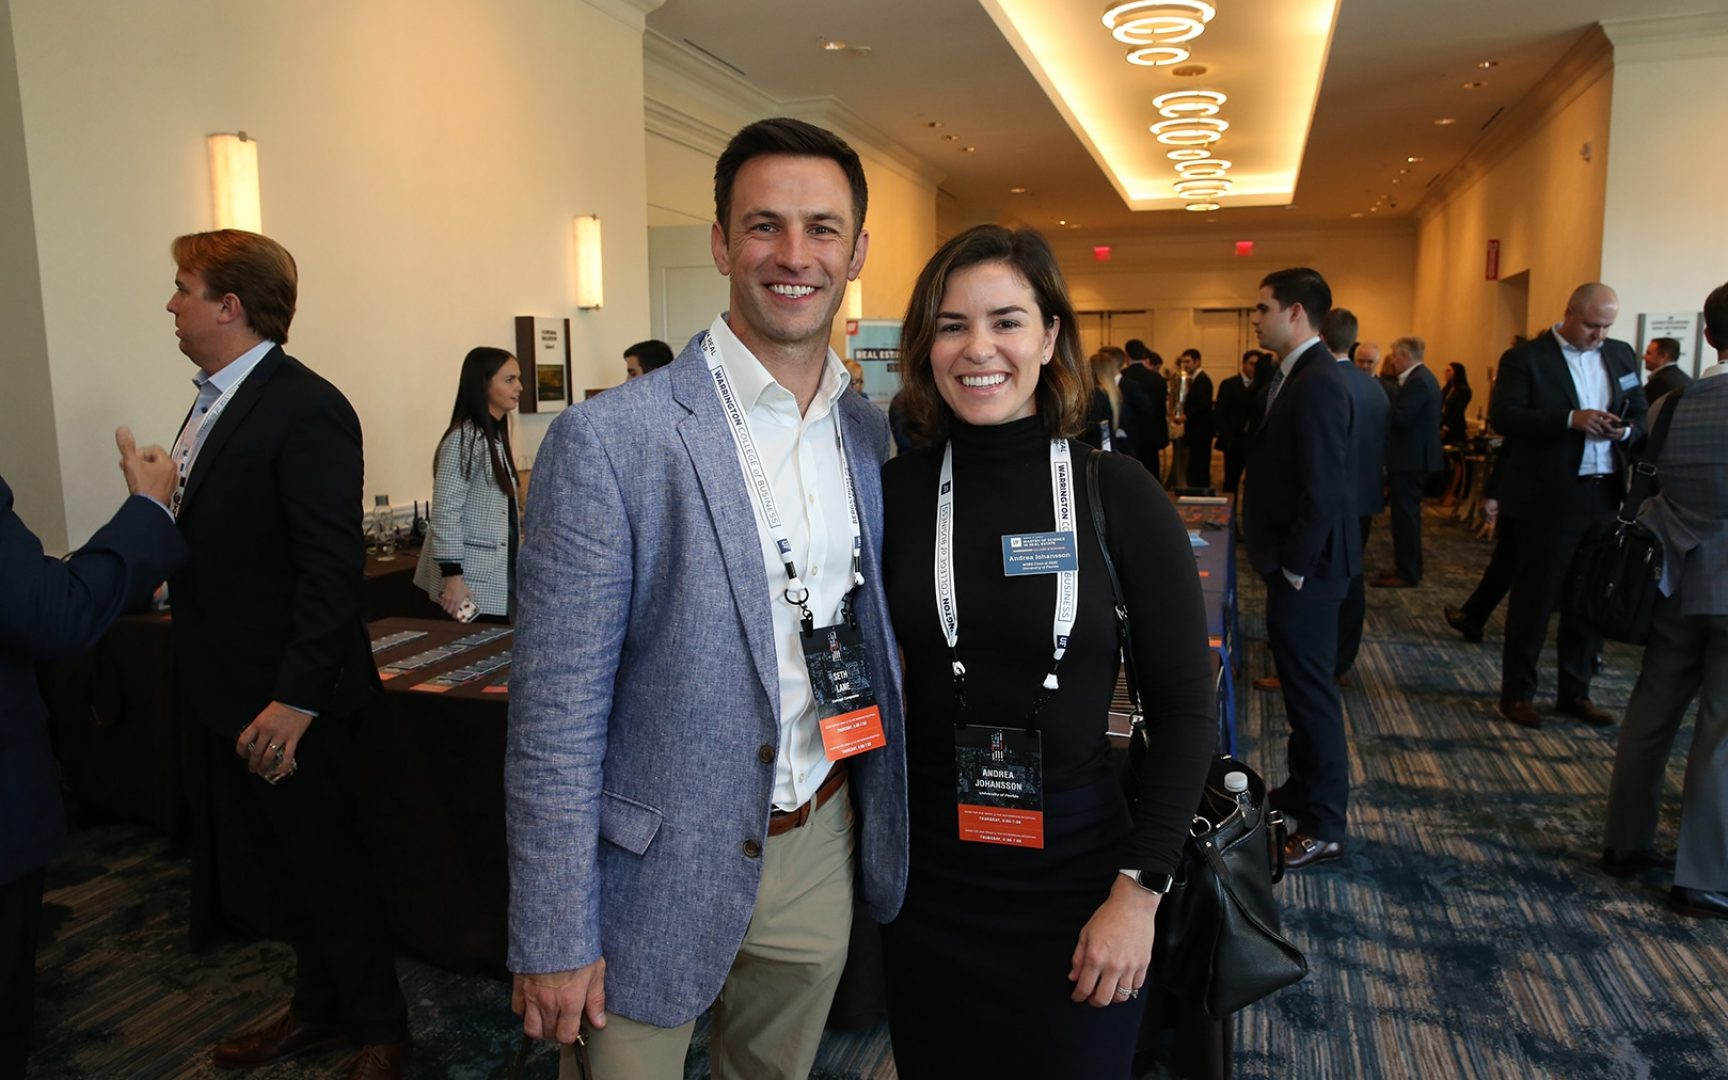 Man in suit poses with woman in suit at a conference